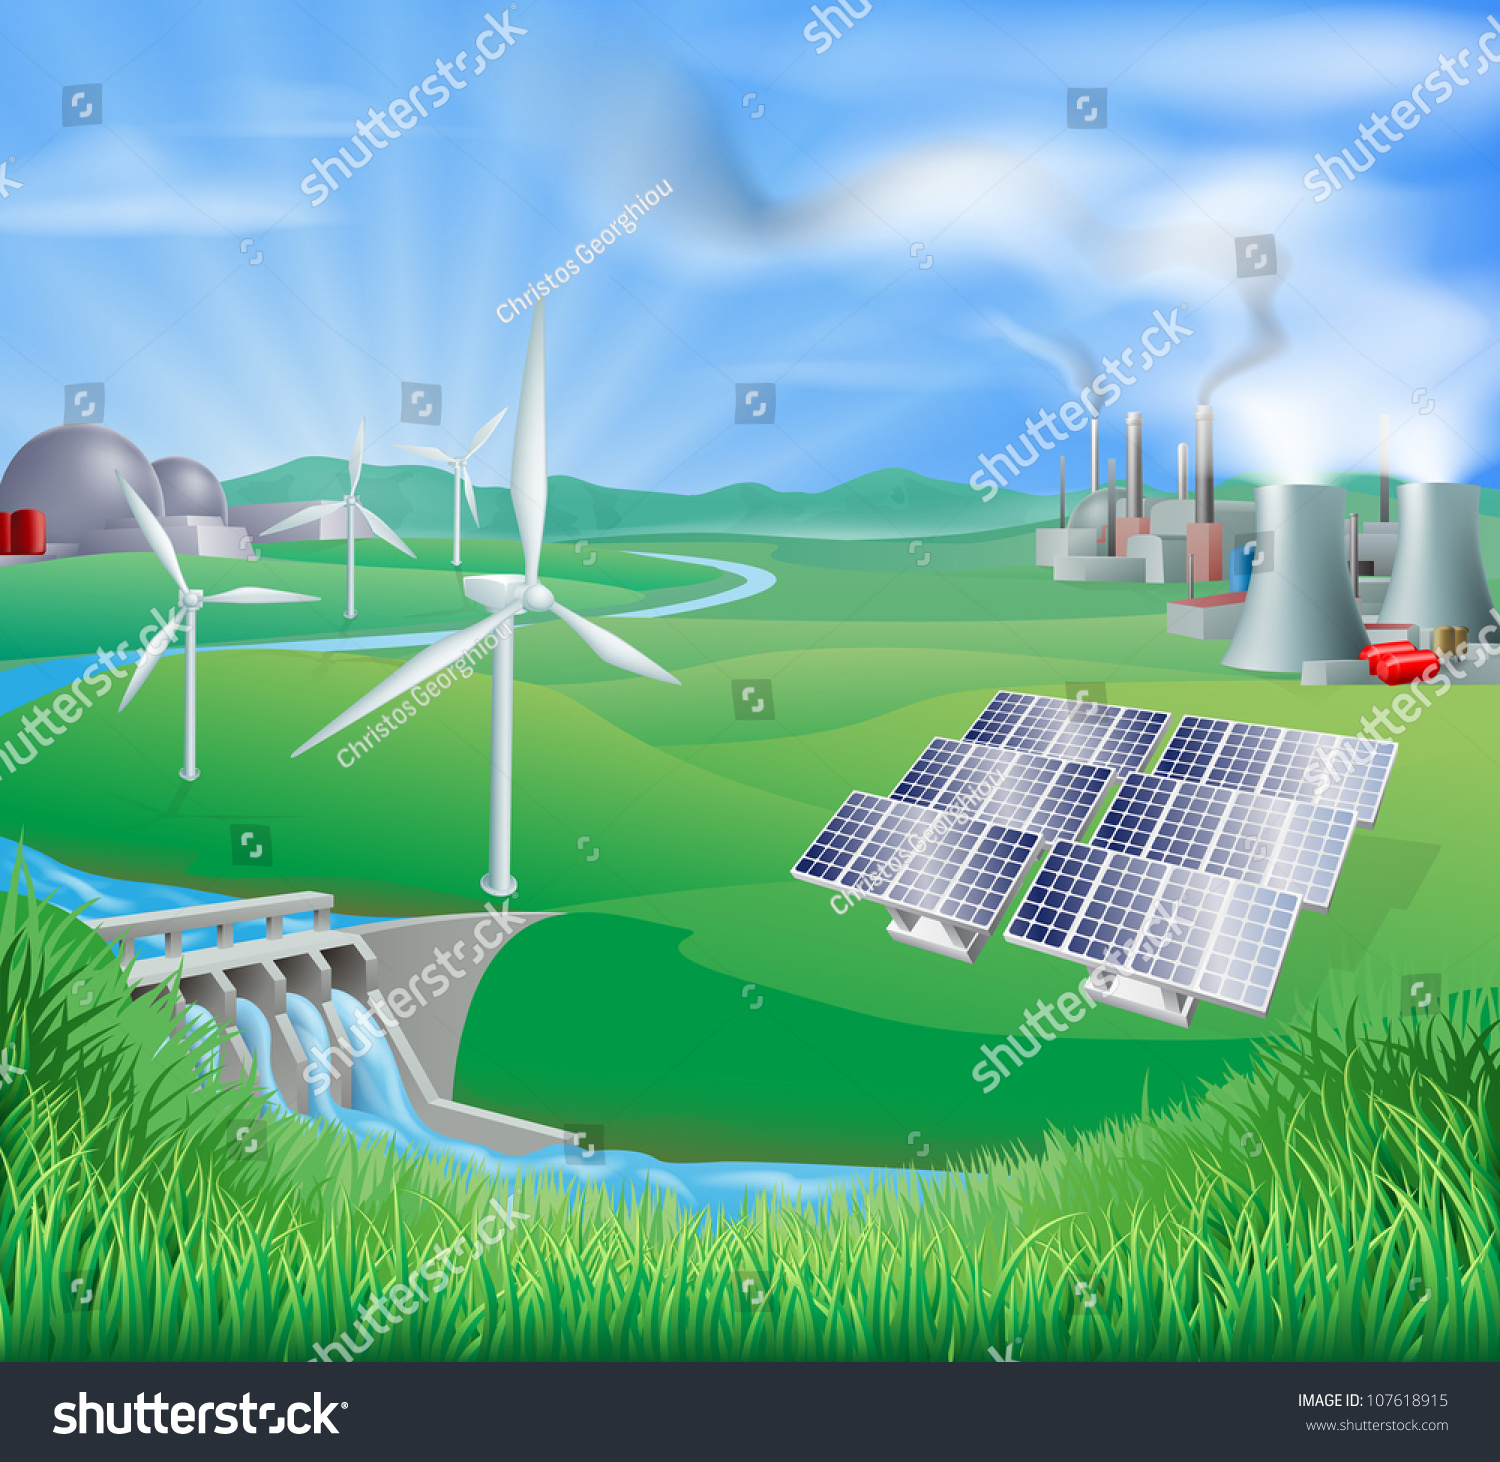 Promise for the future-renewable energy essay